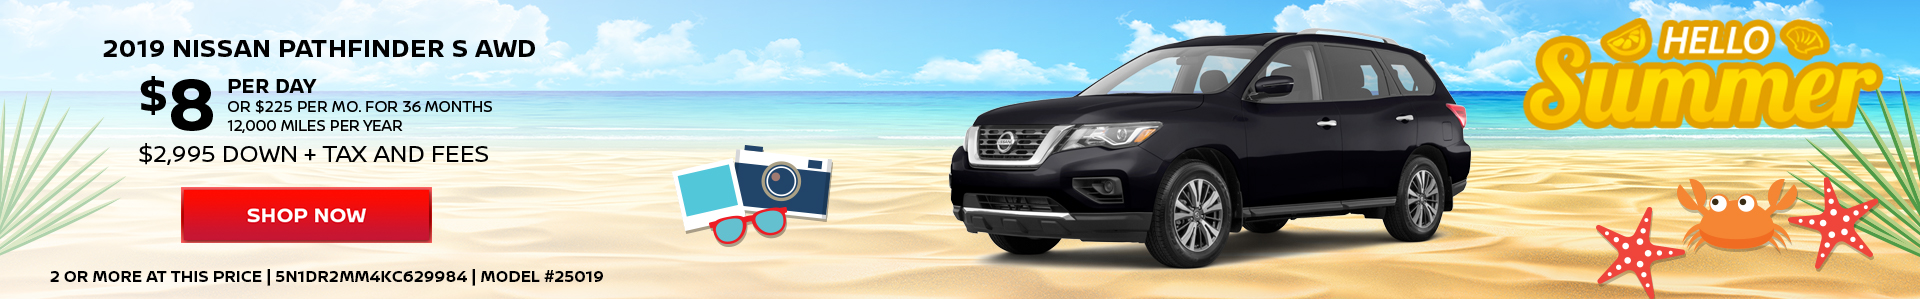 Nissan Pathfinder $8 Day Lease